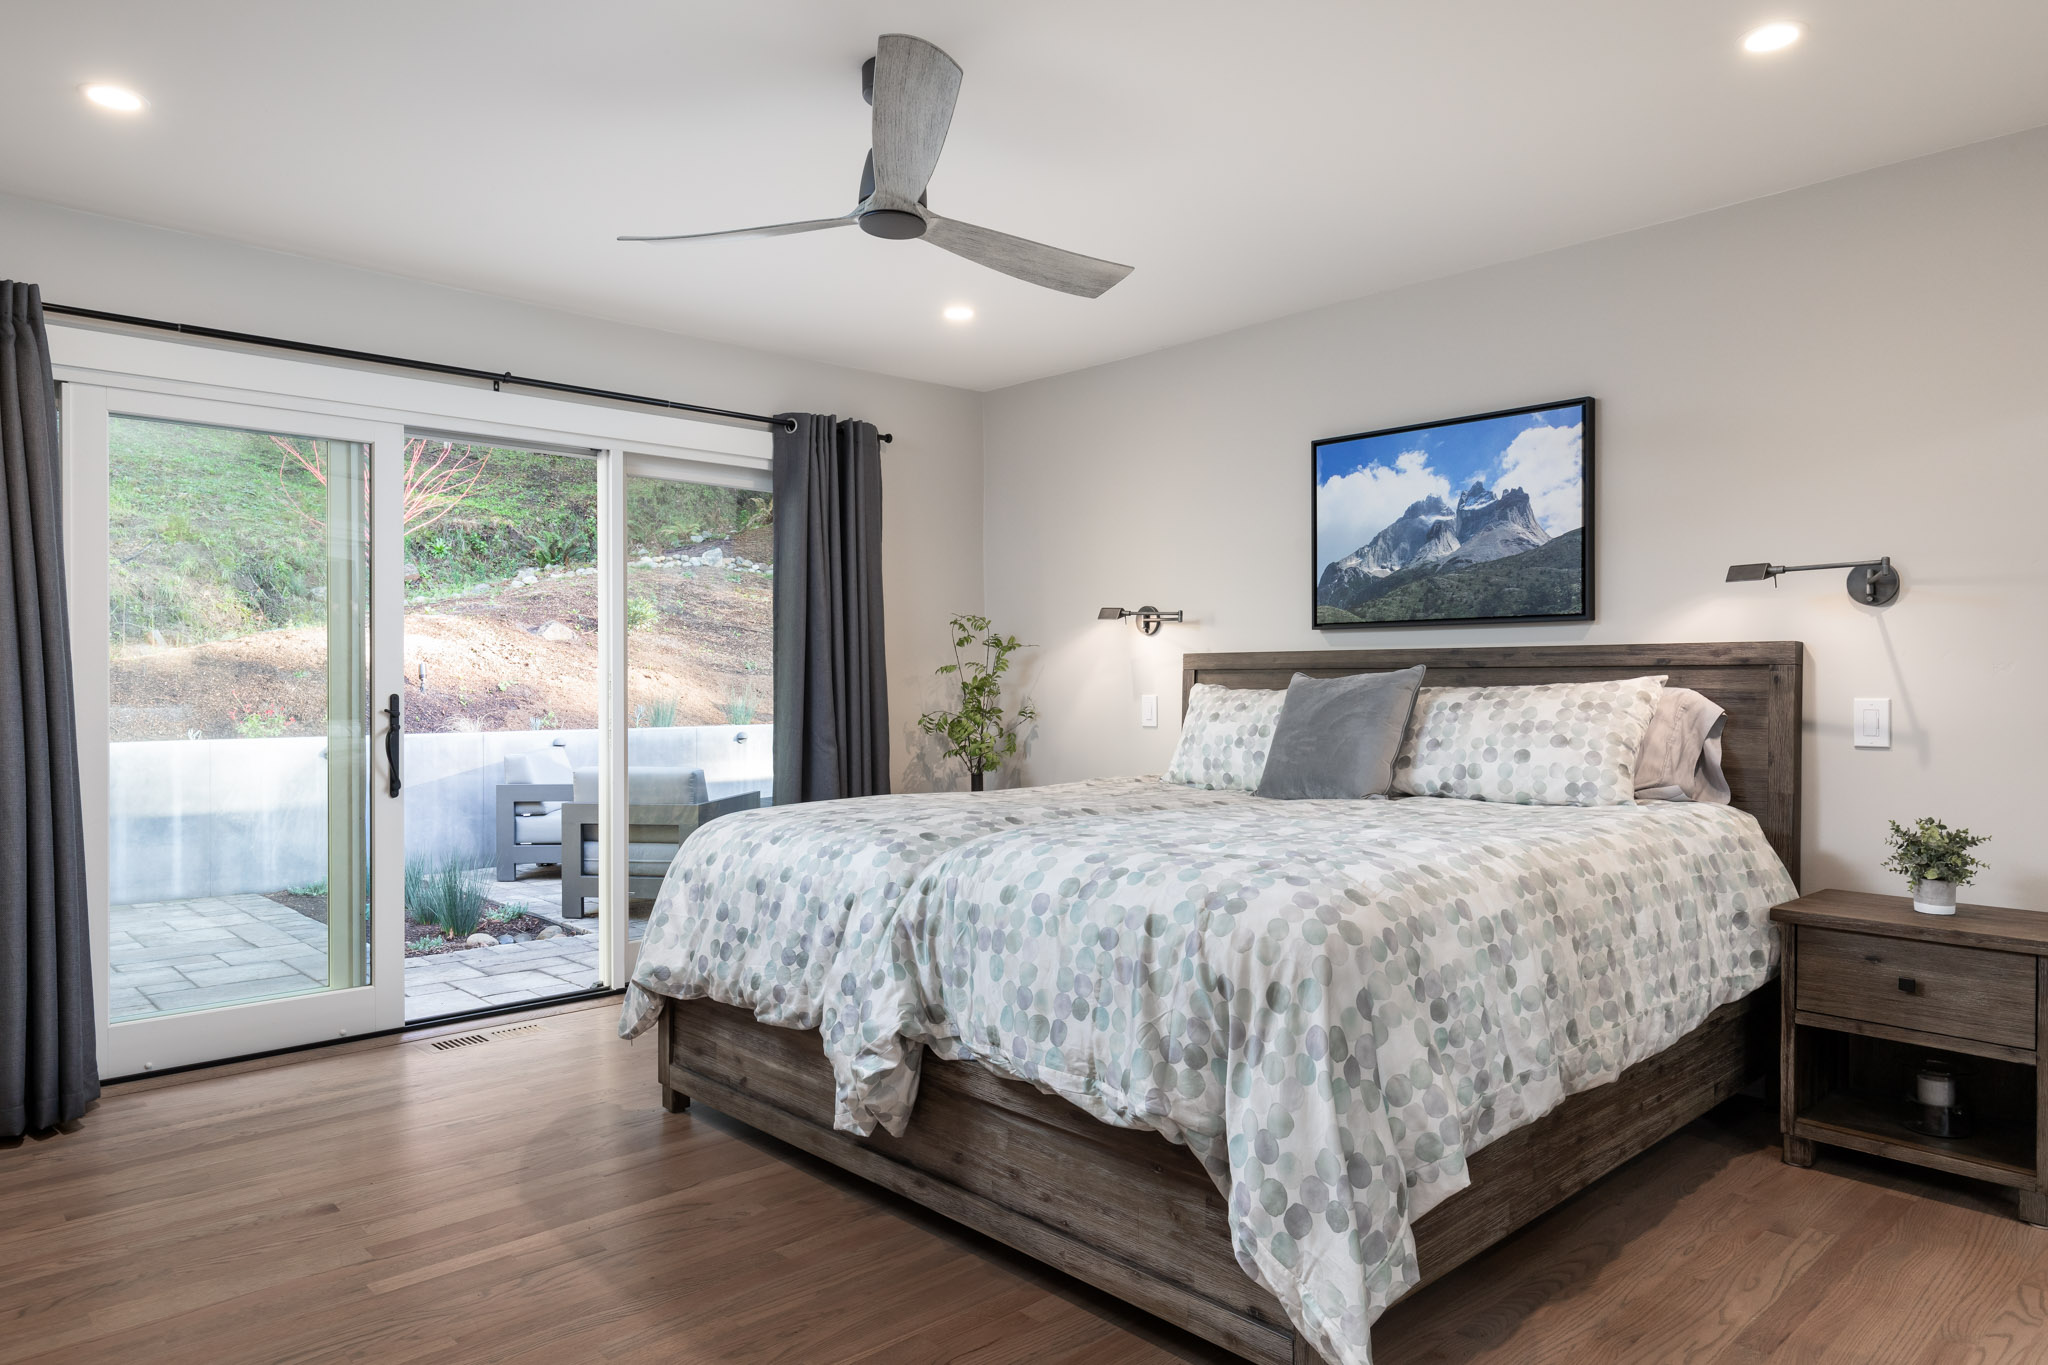 Bedroom with hard wood floors and brightly colored finishes